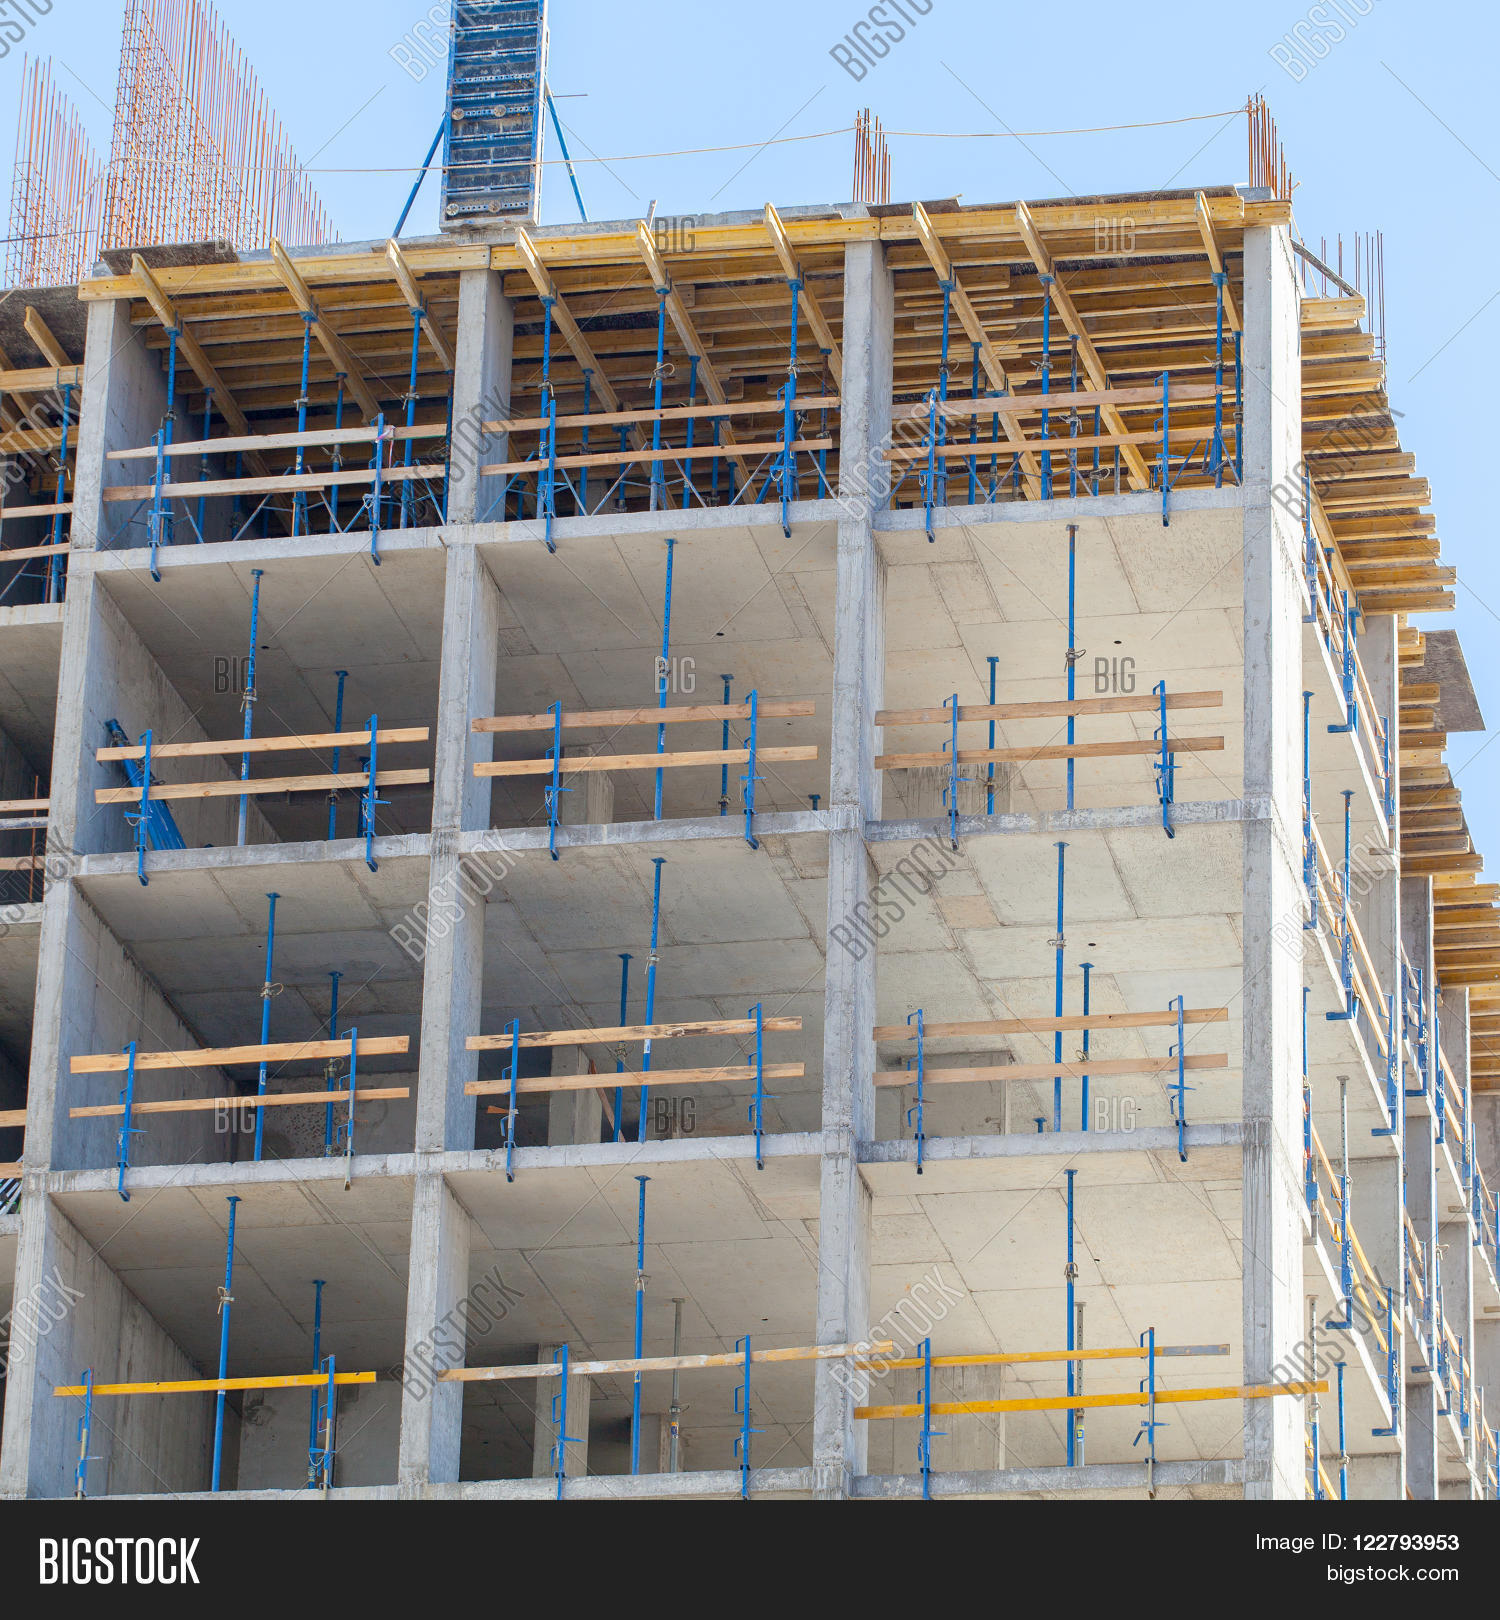 Masonry Building Framed : Monolithic frame construction image photo bigstock